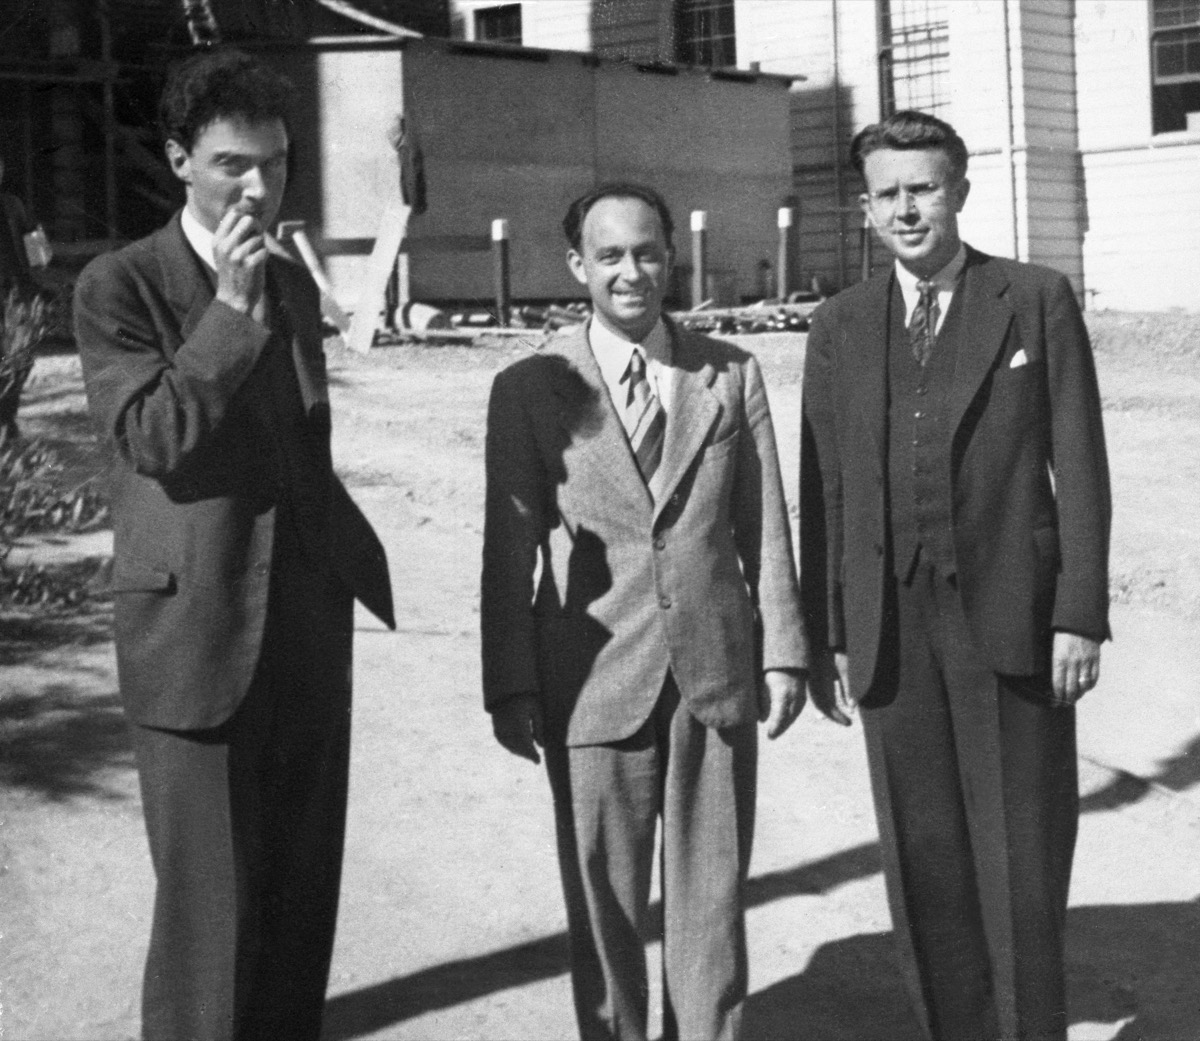 robert oppenheimer, enrico fermi, and ernest lawrence, the leaders of the manhattan project